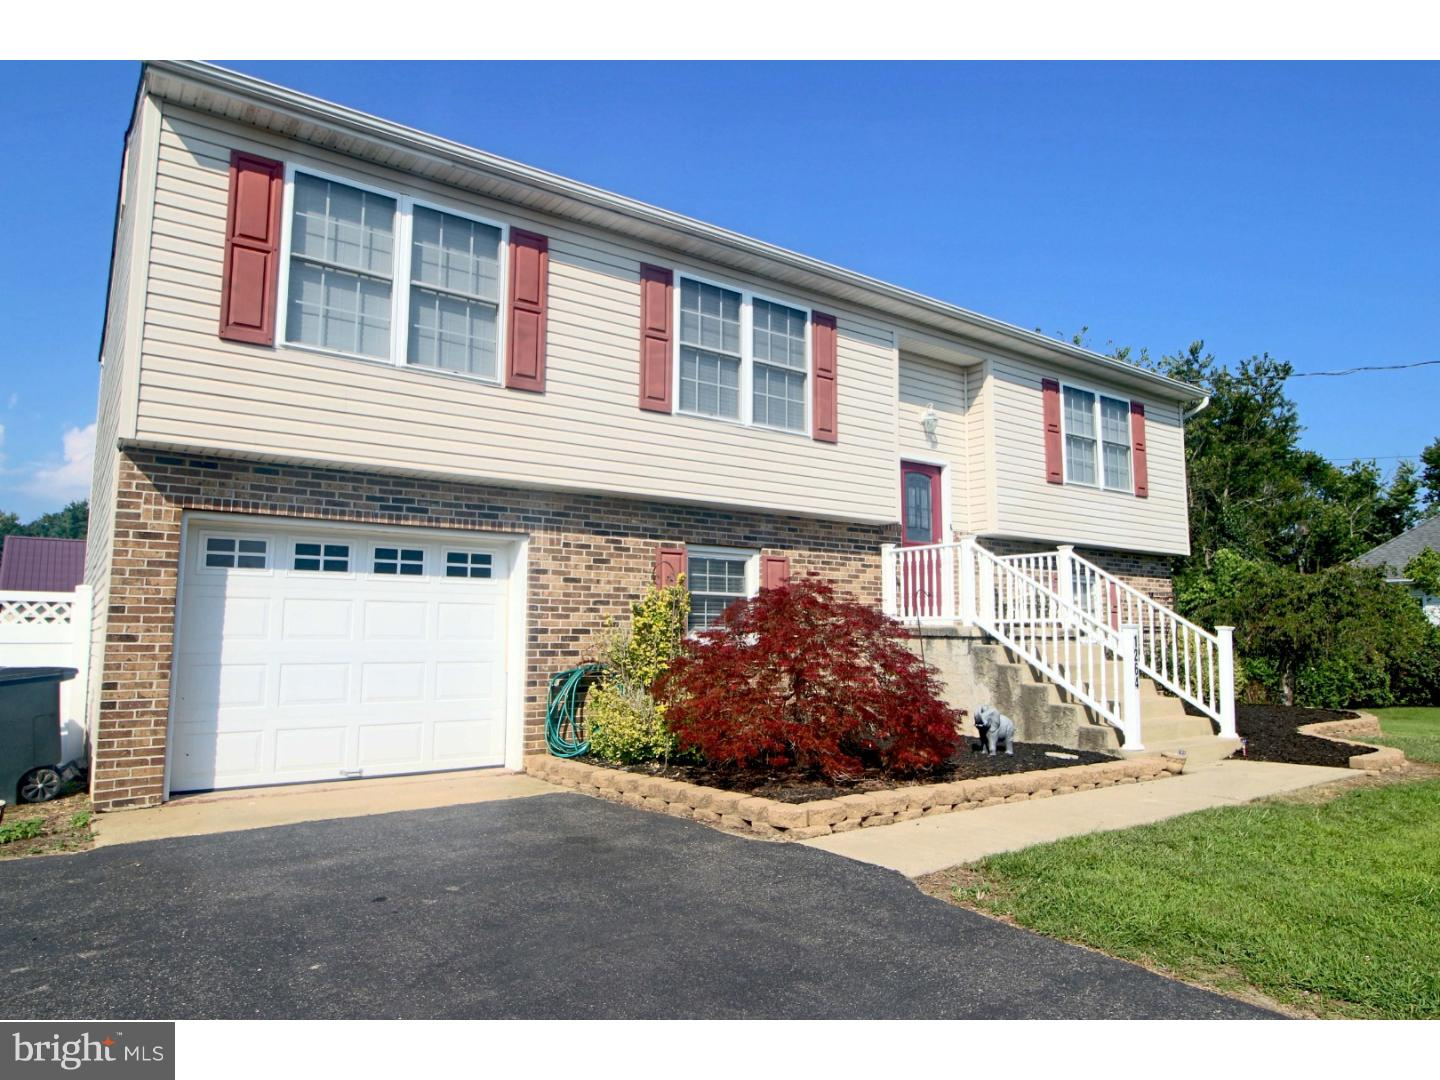 1264 MIDDLE AVENUE, WATERFORD WORKS, NJ 08089